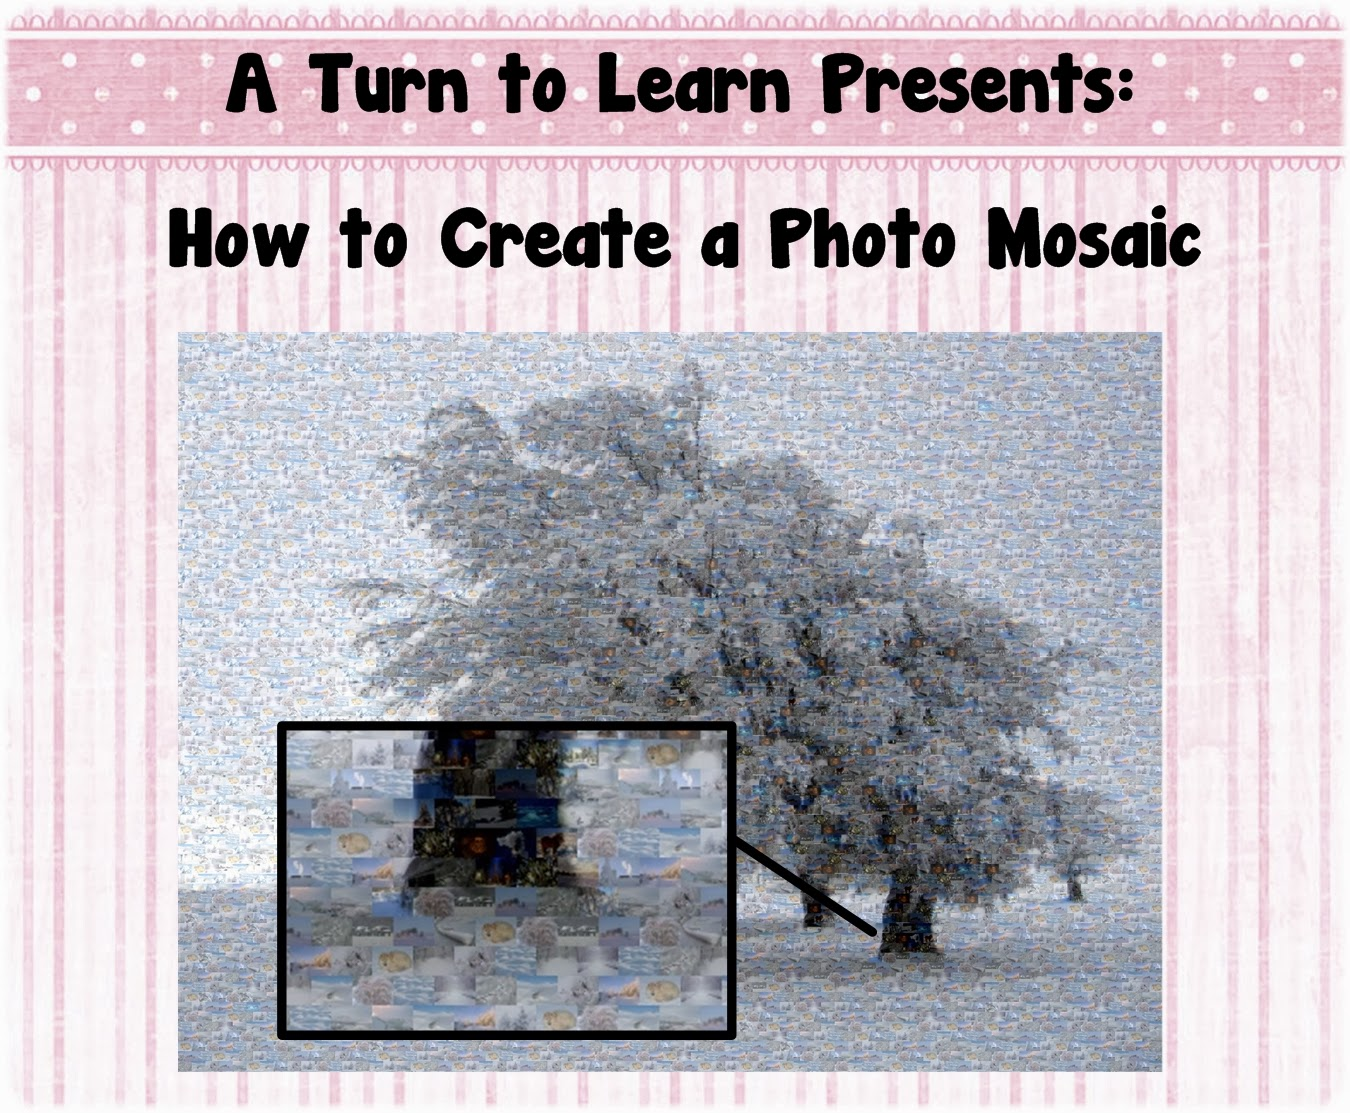 http://aturntolearn.blogspot.com/2014/01/how-to-make-photo-mosaic.html